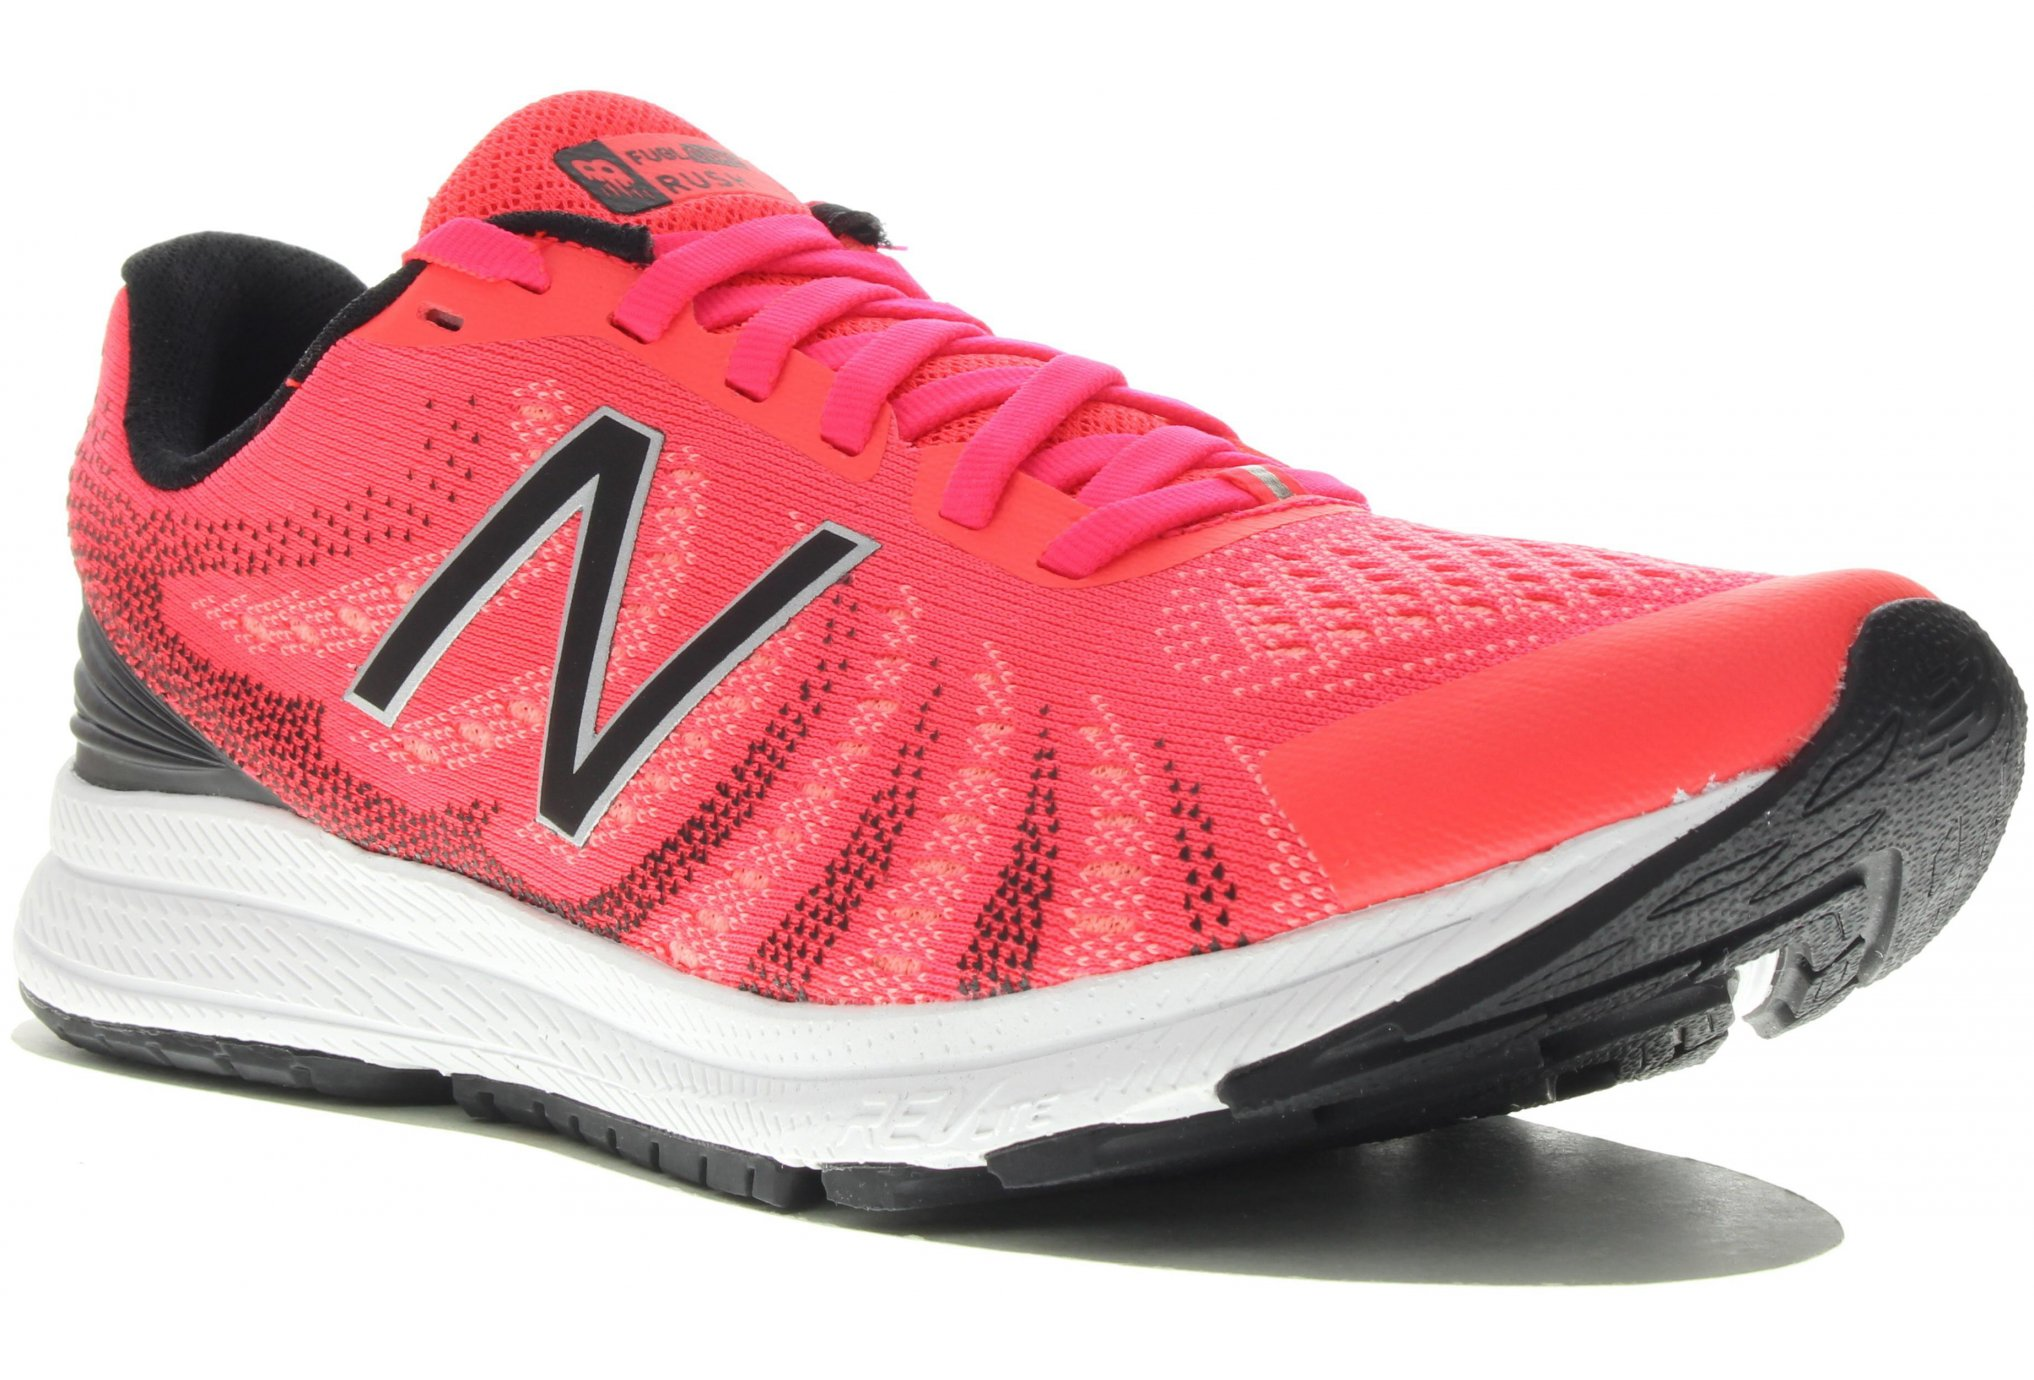 New Balance FuelCore Rush V3 W Chaussures running femme